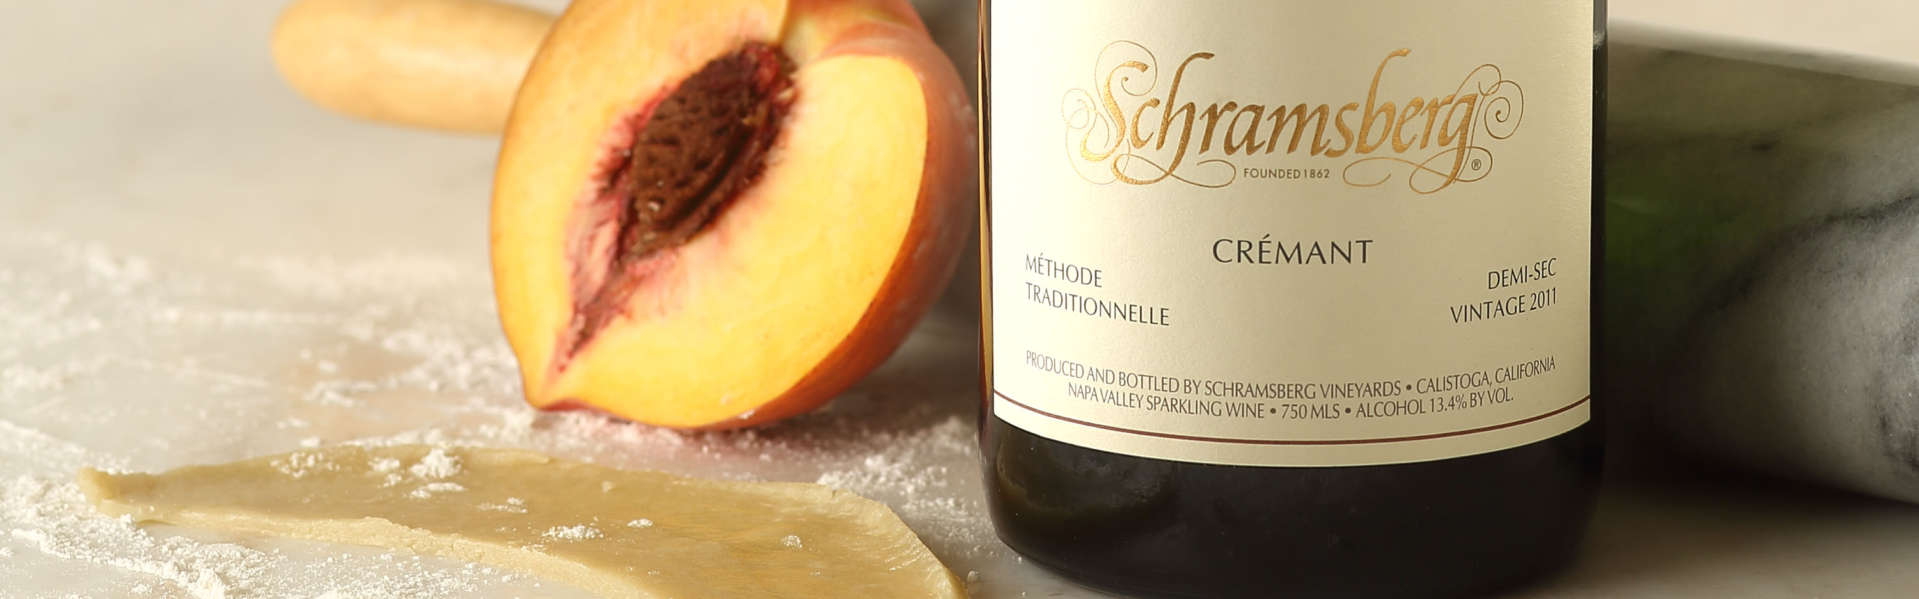 Pastry and sliced peach on table with a bottle of Schramsberg 2011 Cremant Demi-sec sparkling wine